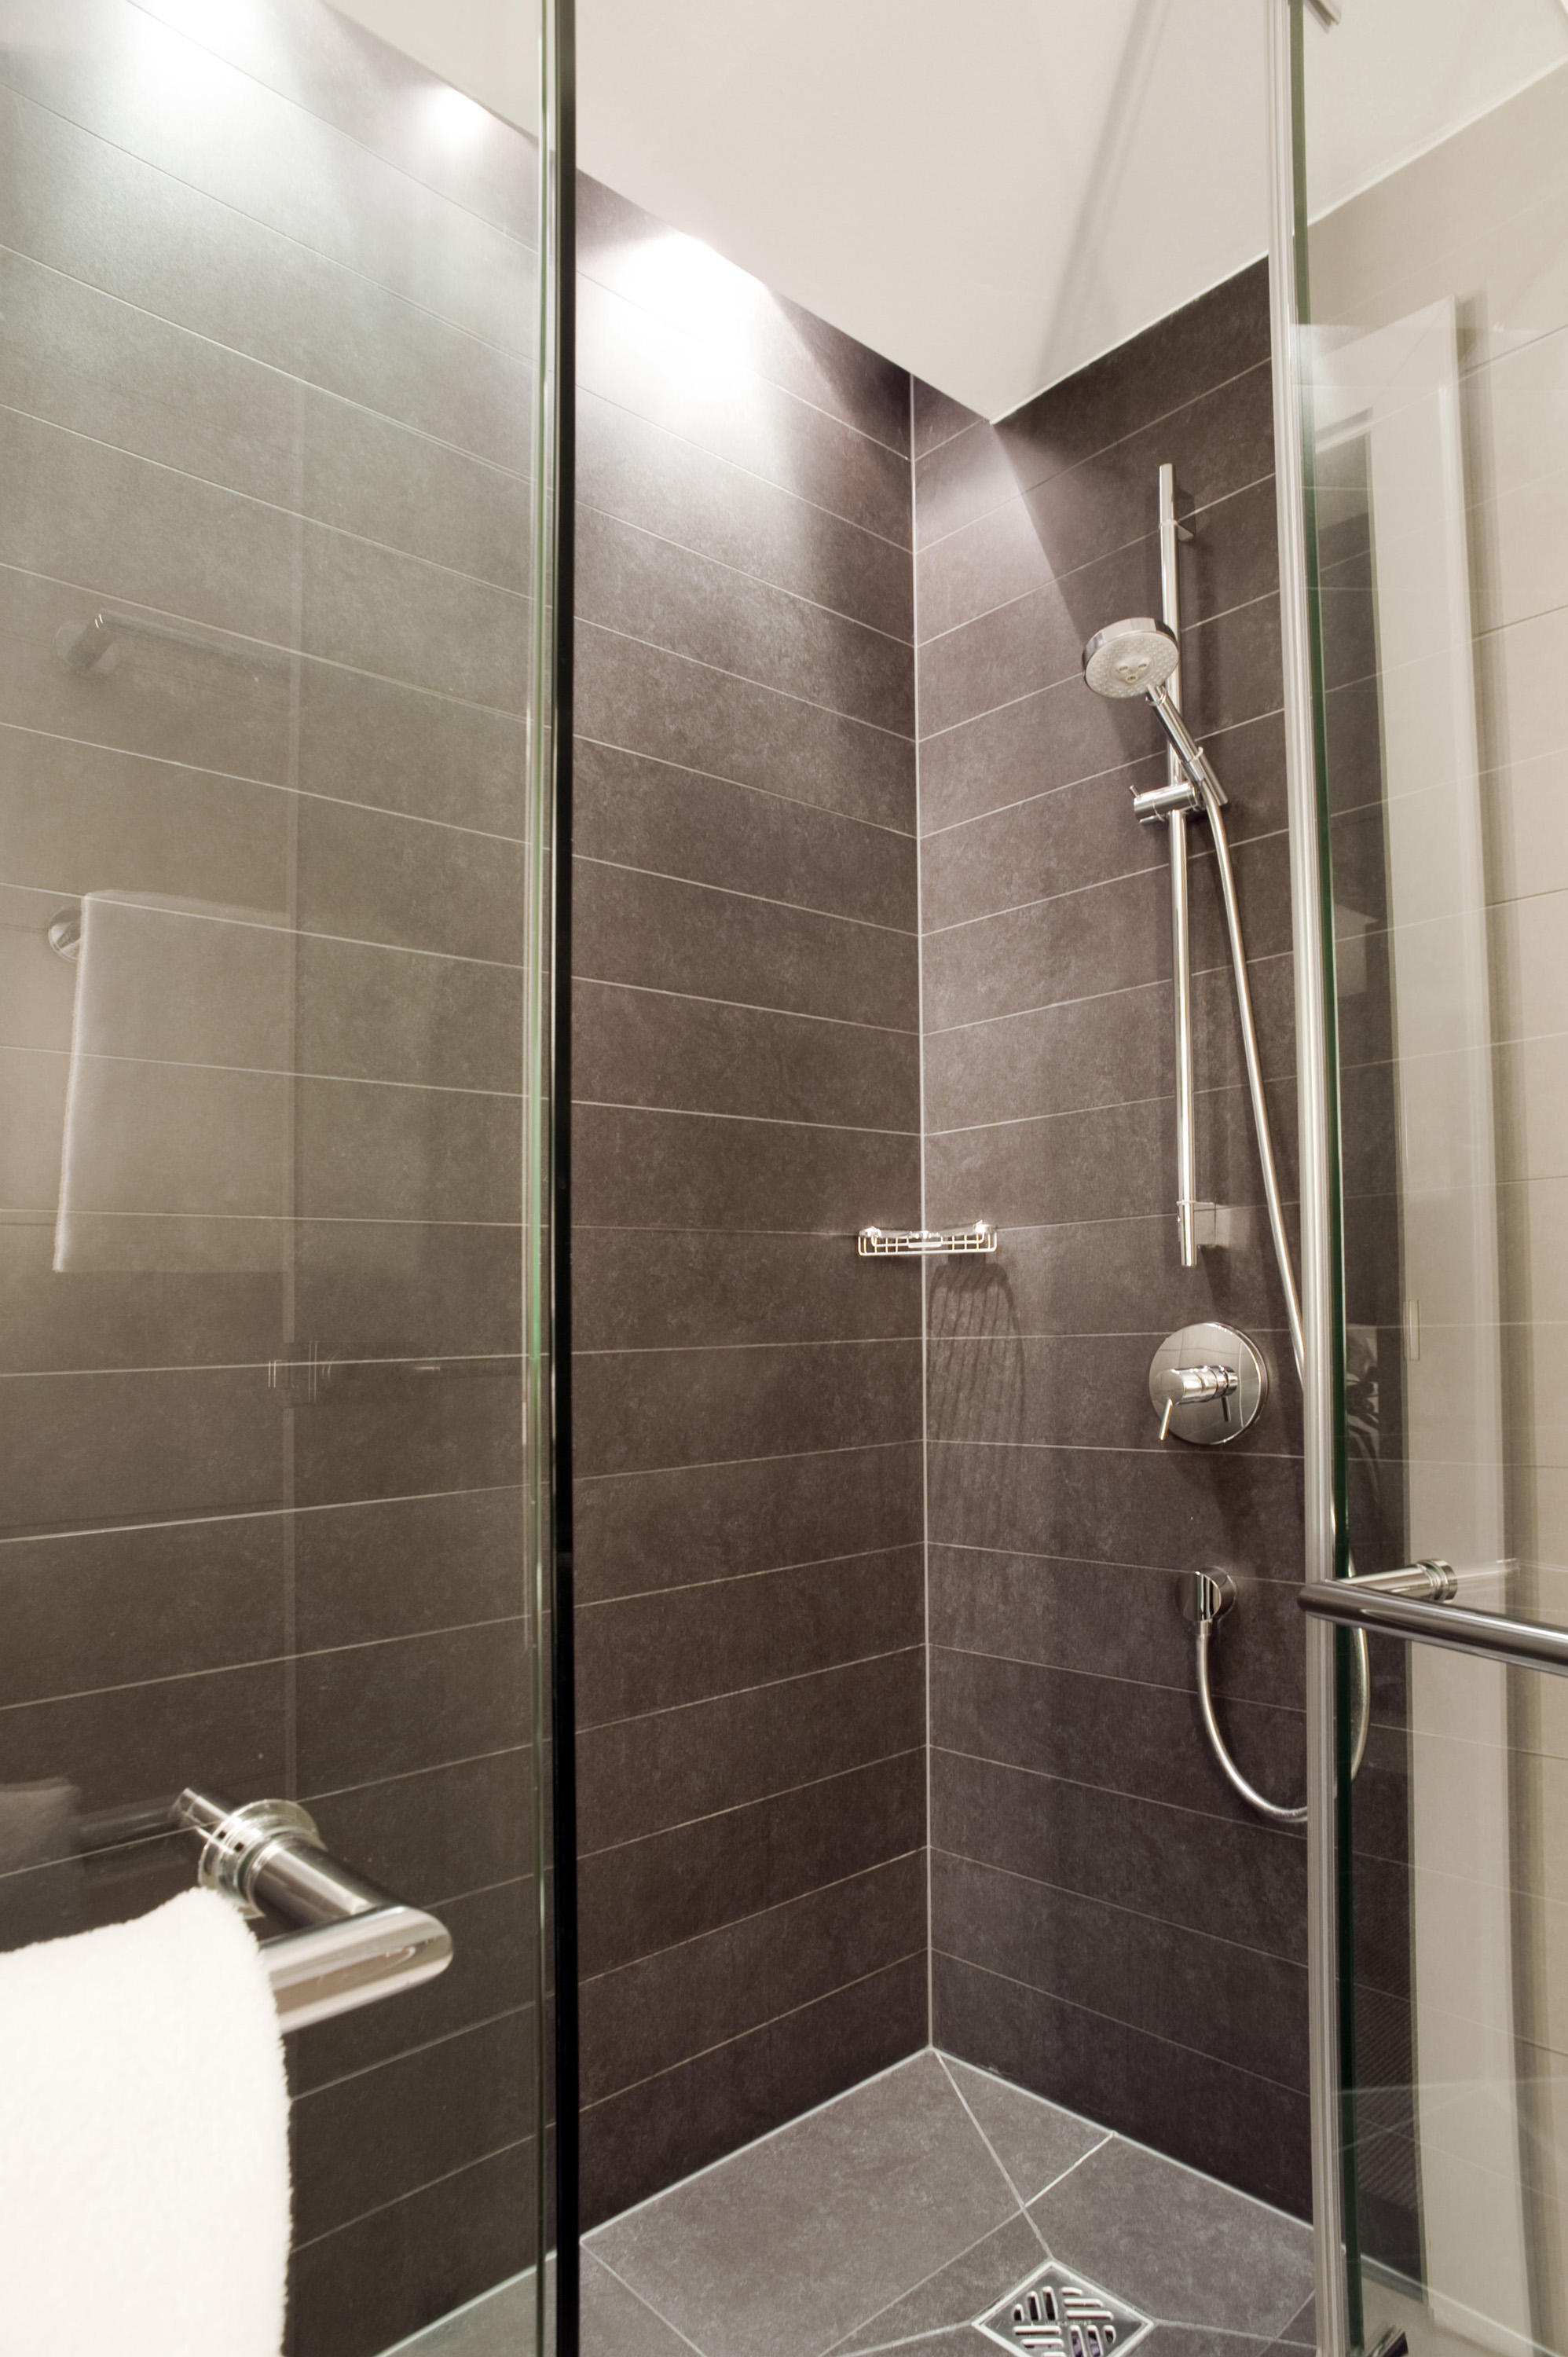 Free image of shower cubicle